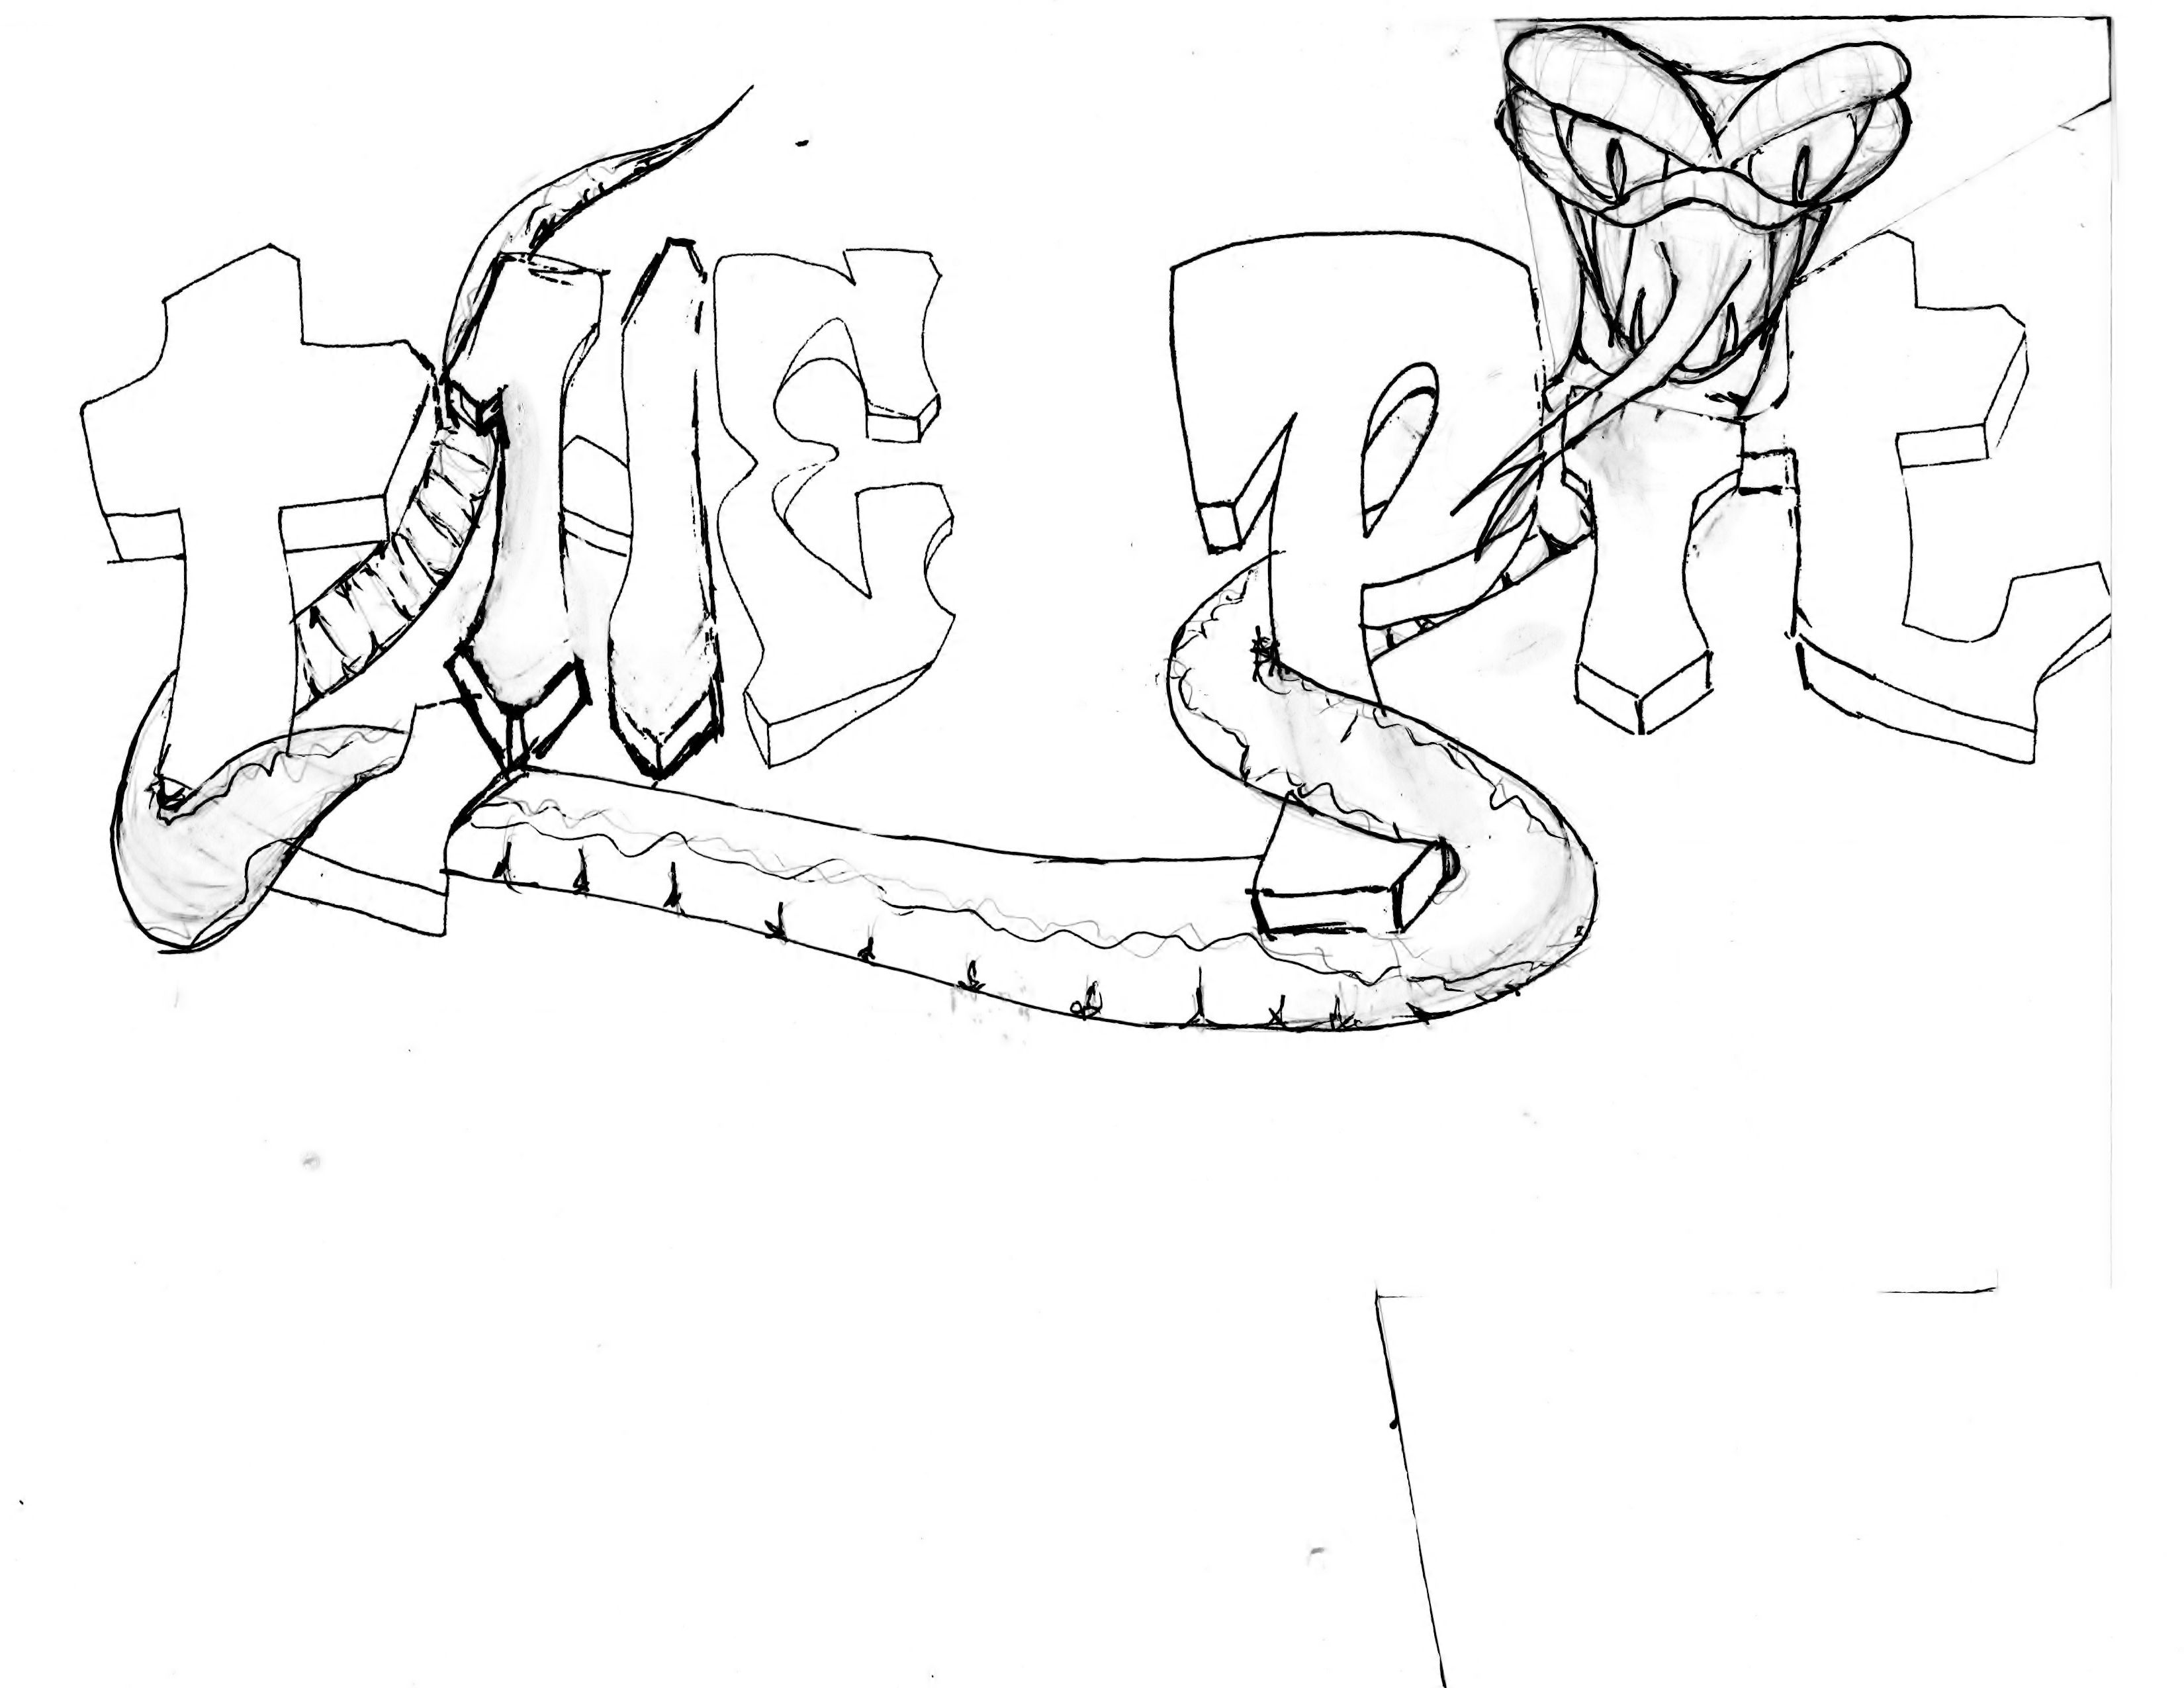 """Playroom Aka """"the Pit"""" Or """"the Snake Pit"""" Mural Sketch"""